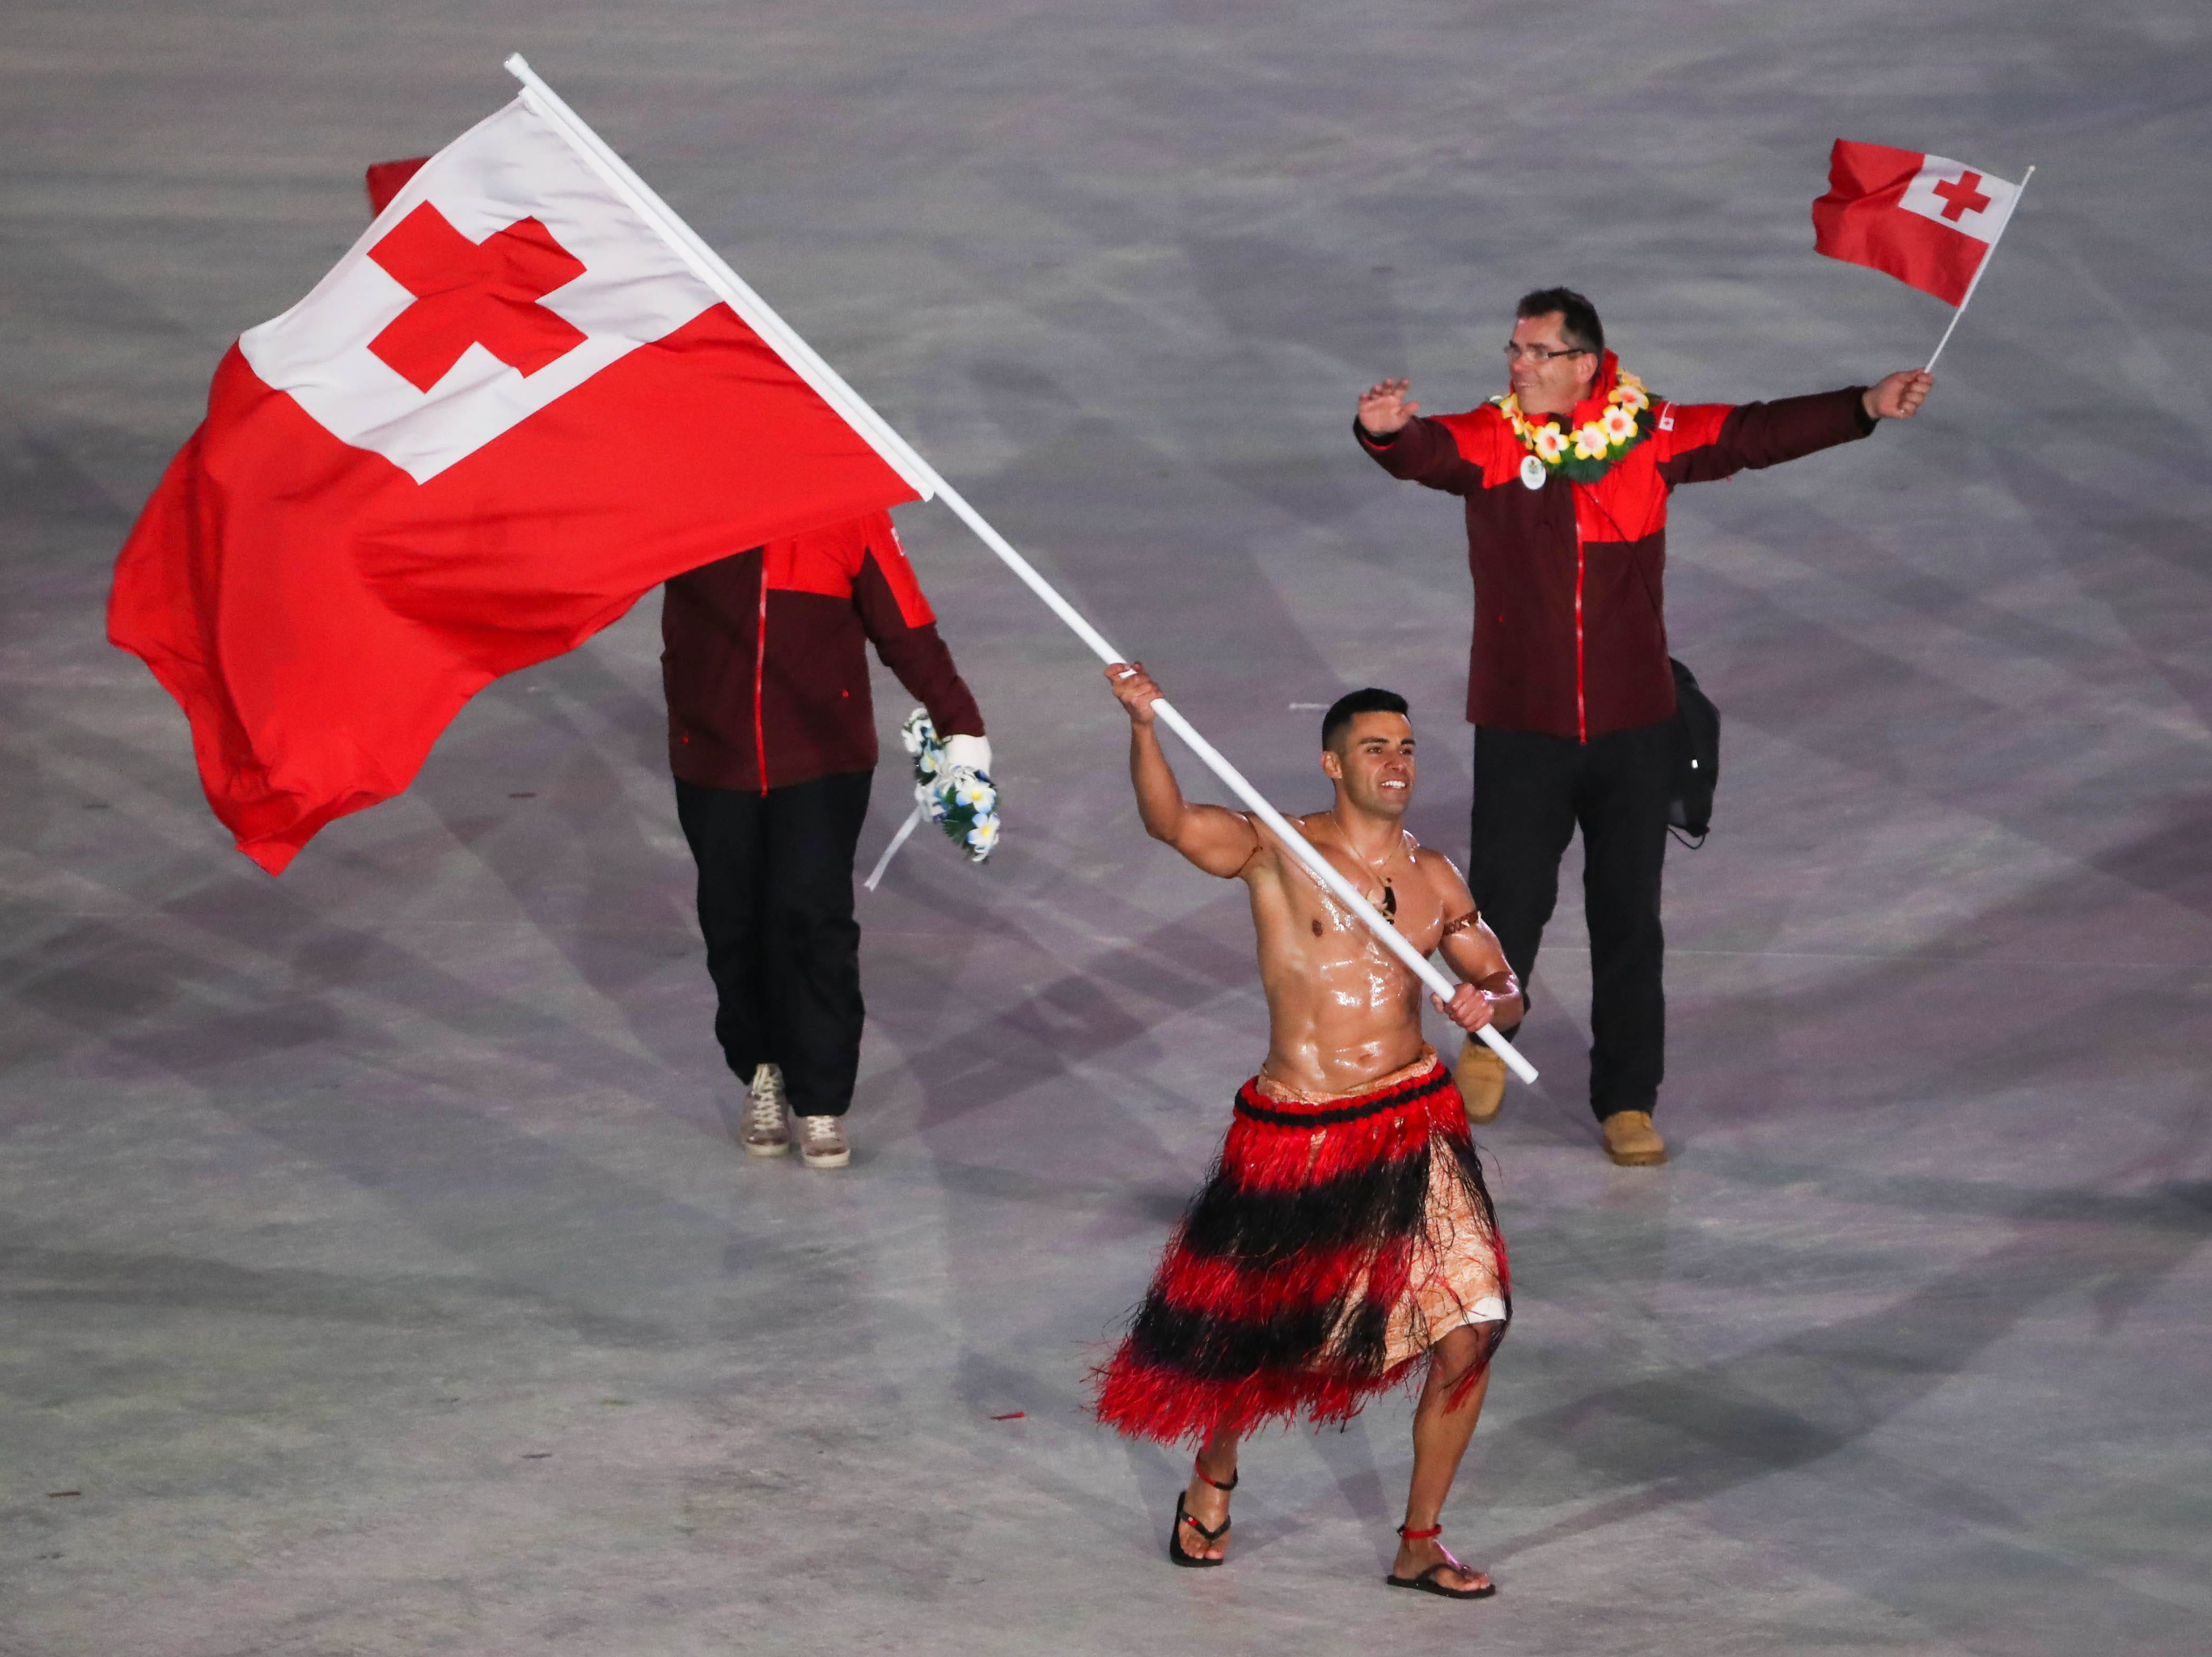 Feb. 9: Pita Taufatofua of Tonga arrives in the parade of athletes in the opening ceremony for the Pyeongchang Winter Games.